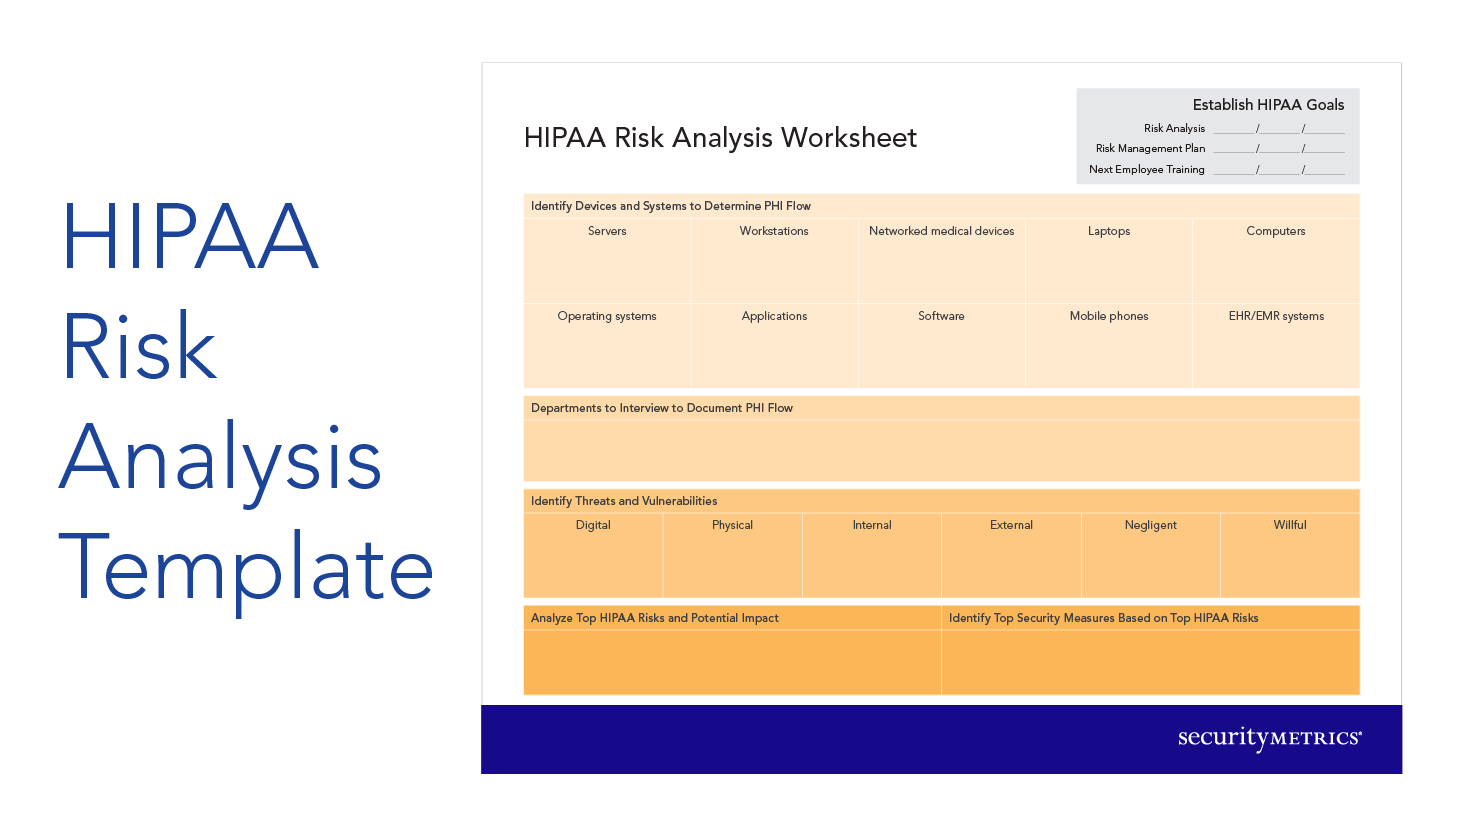 Worksheet Risk Analysis Worksheet how to start a hipaa risk analysis